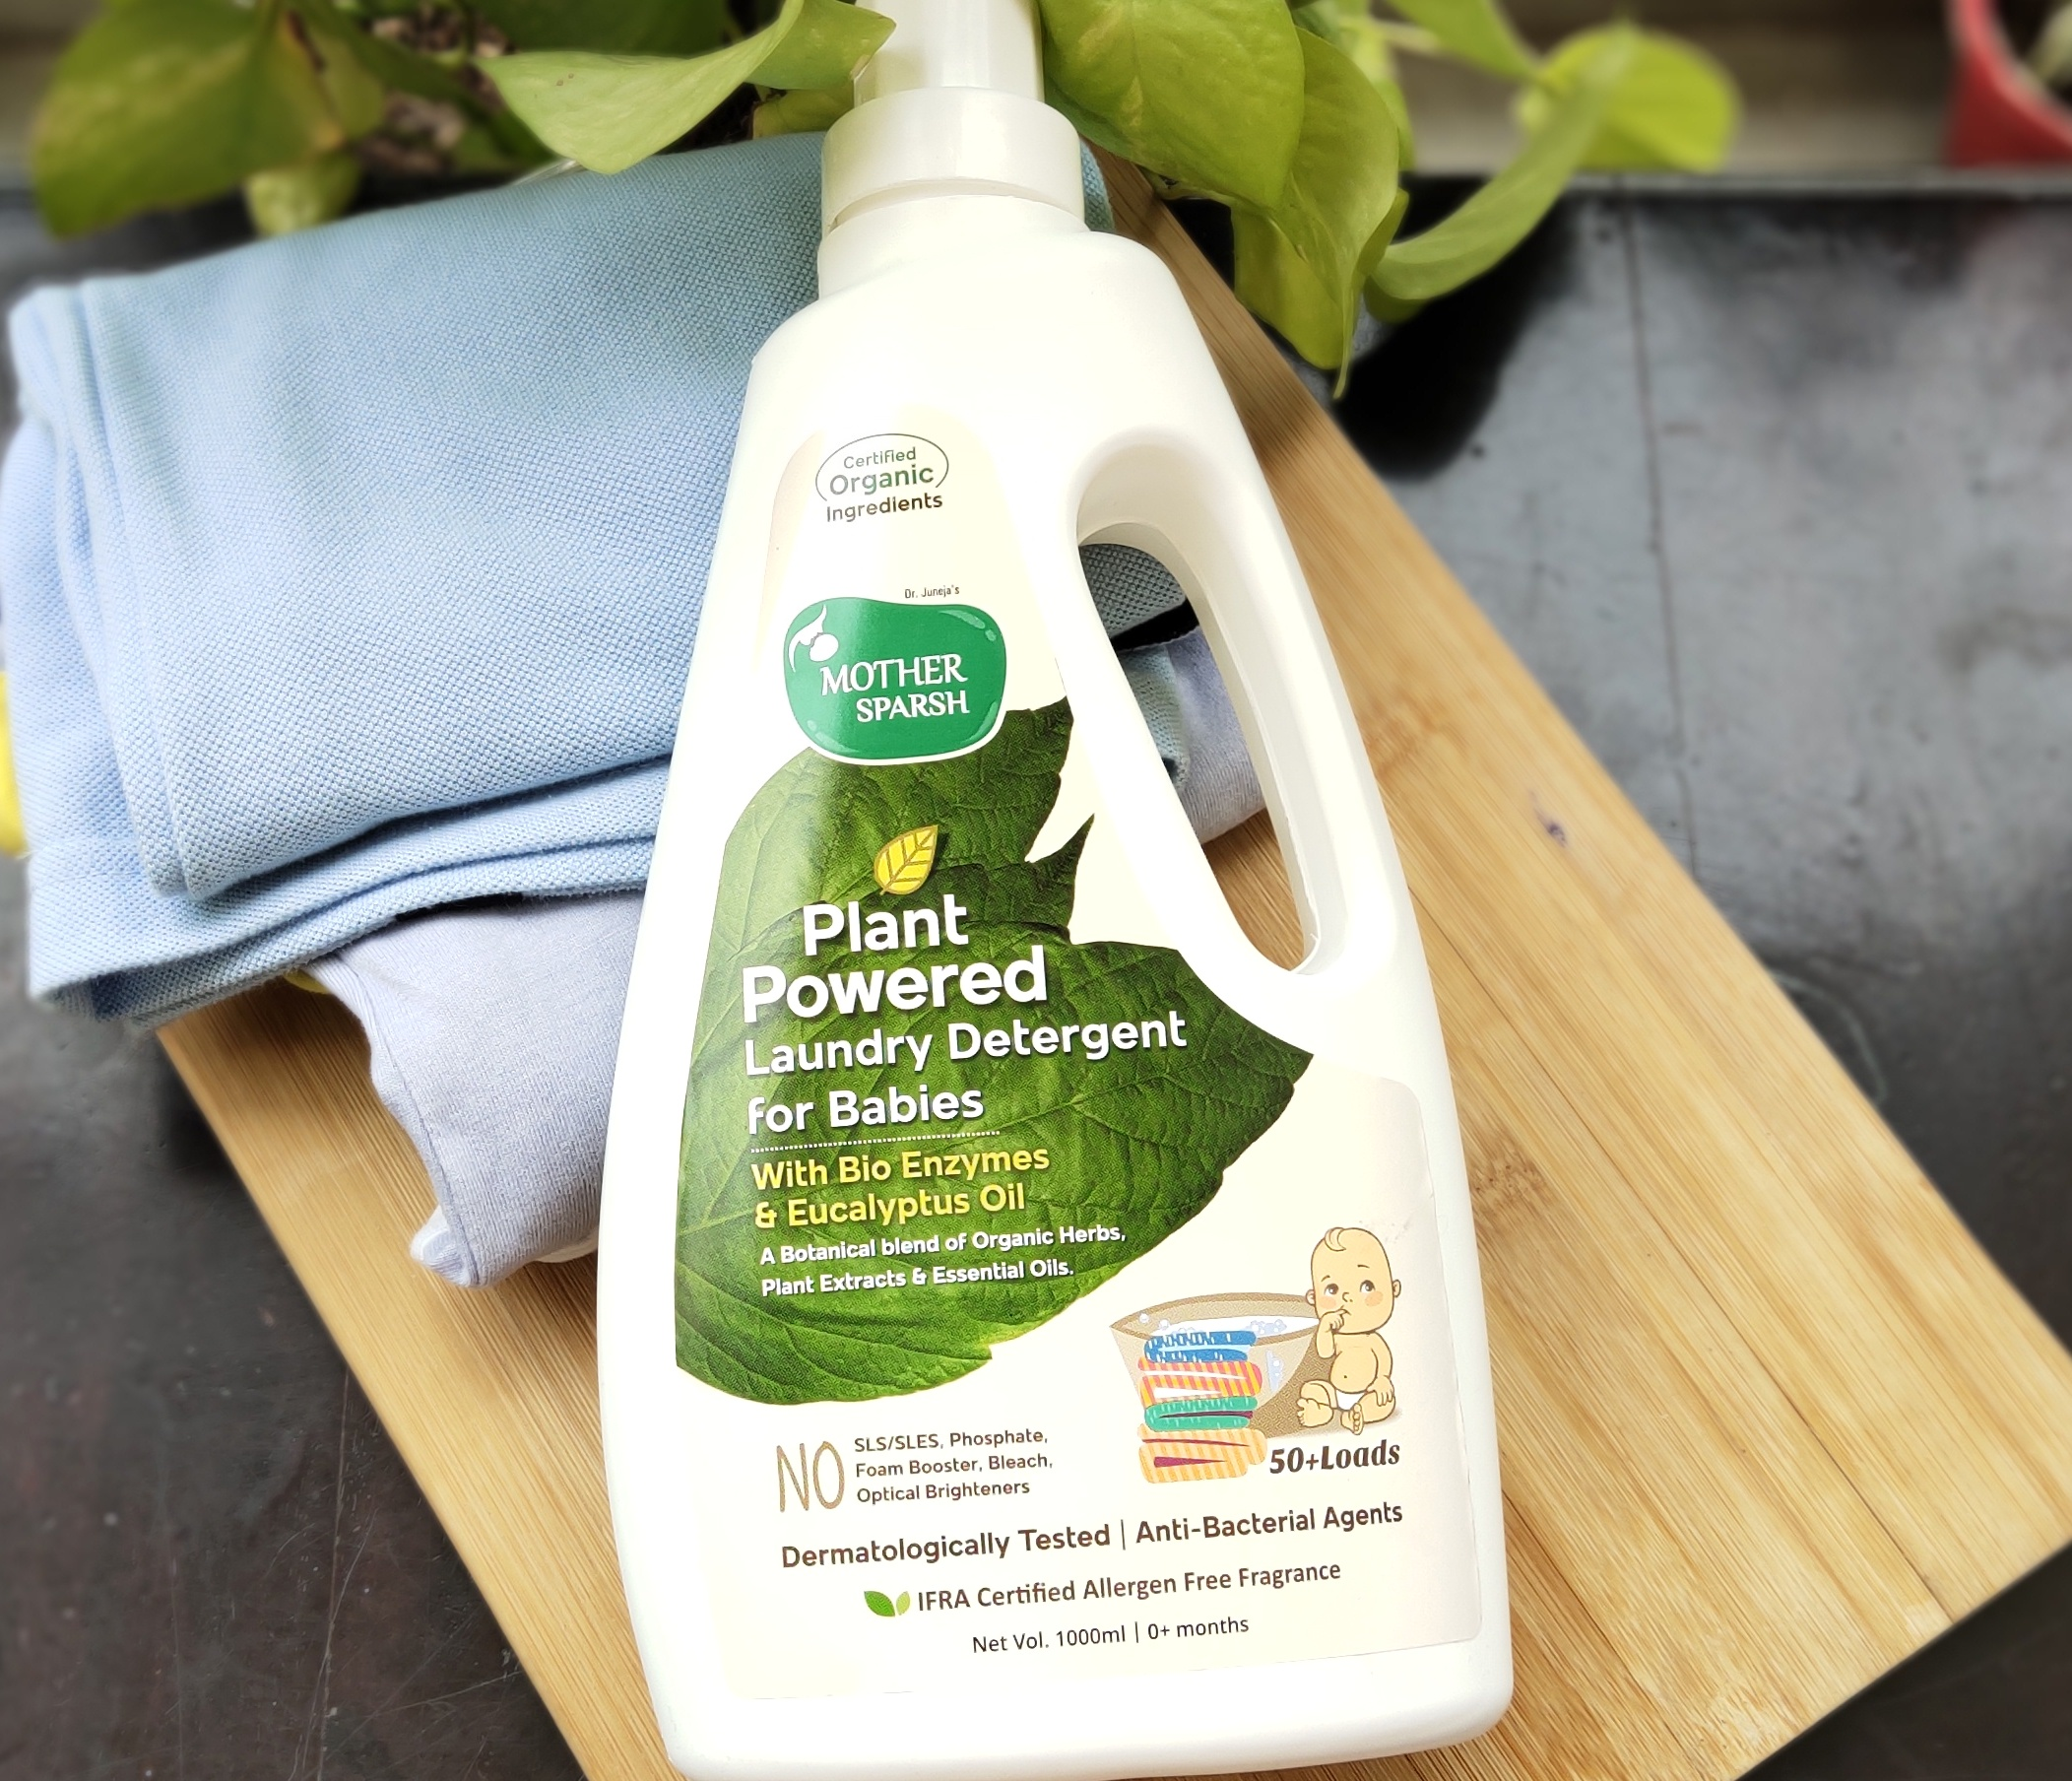 Here are some best laundry detergents for babies that are mils and effective in India 2021 #babydetergent #laundrydetergent #mildbabydetergent #Mothersparsh #luvlapbabydetergent #himalayababydetergent